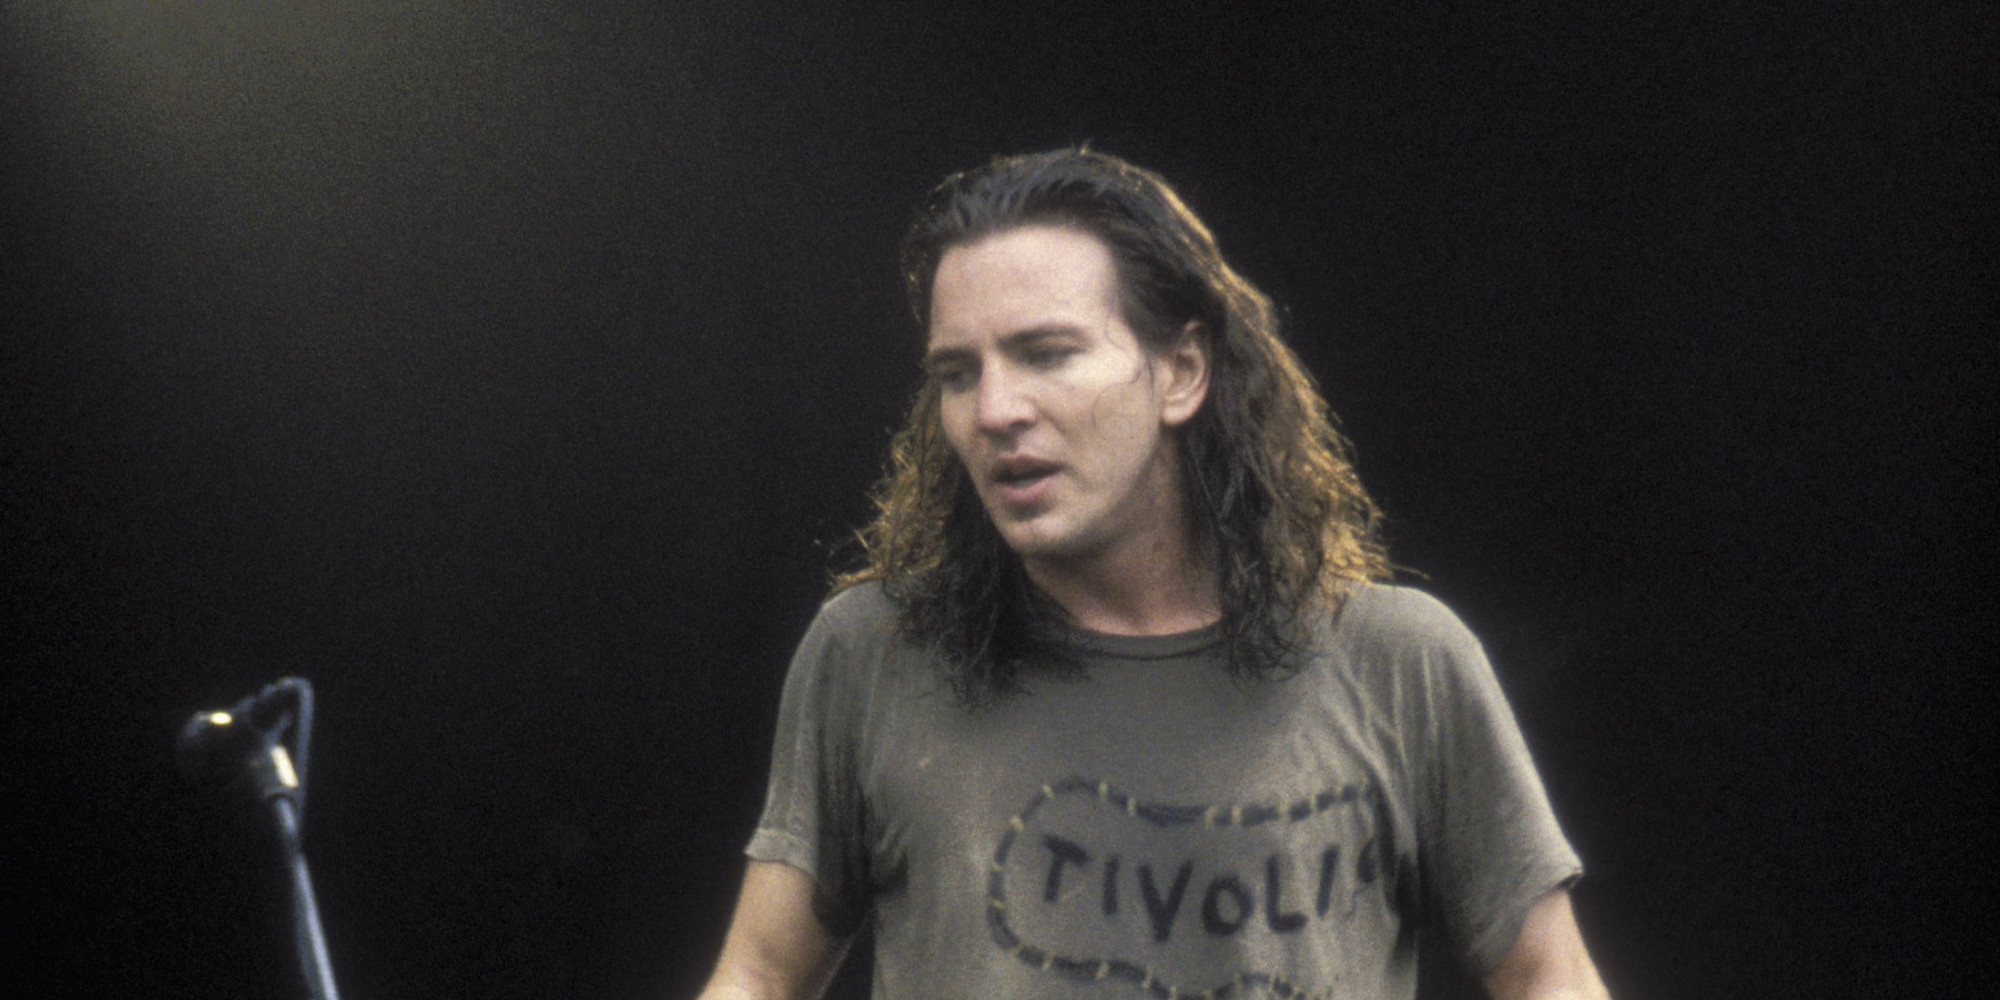 Pearl Jam's 'Vs.' Turns 20, So Let's Drop The Leash